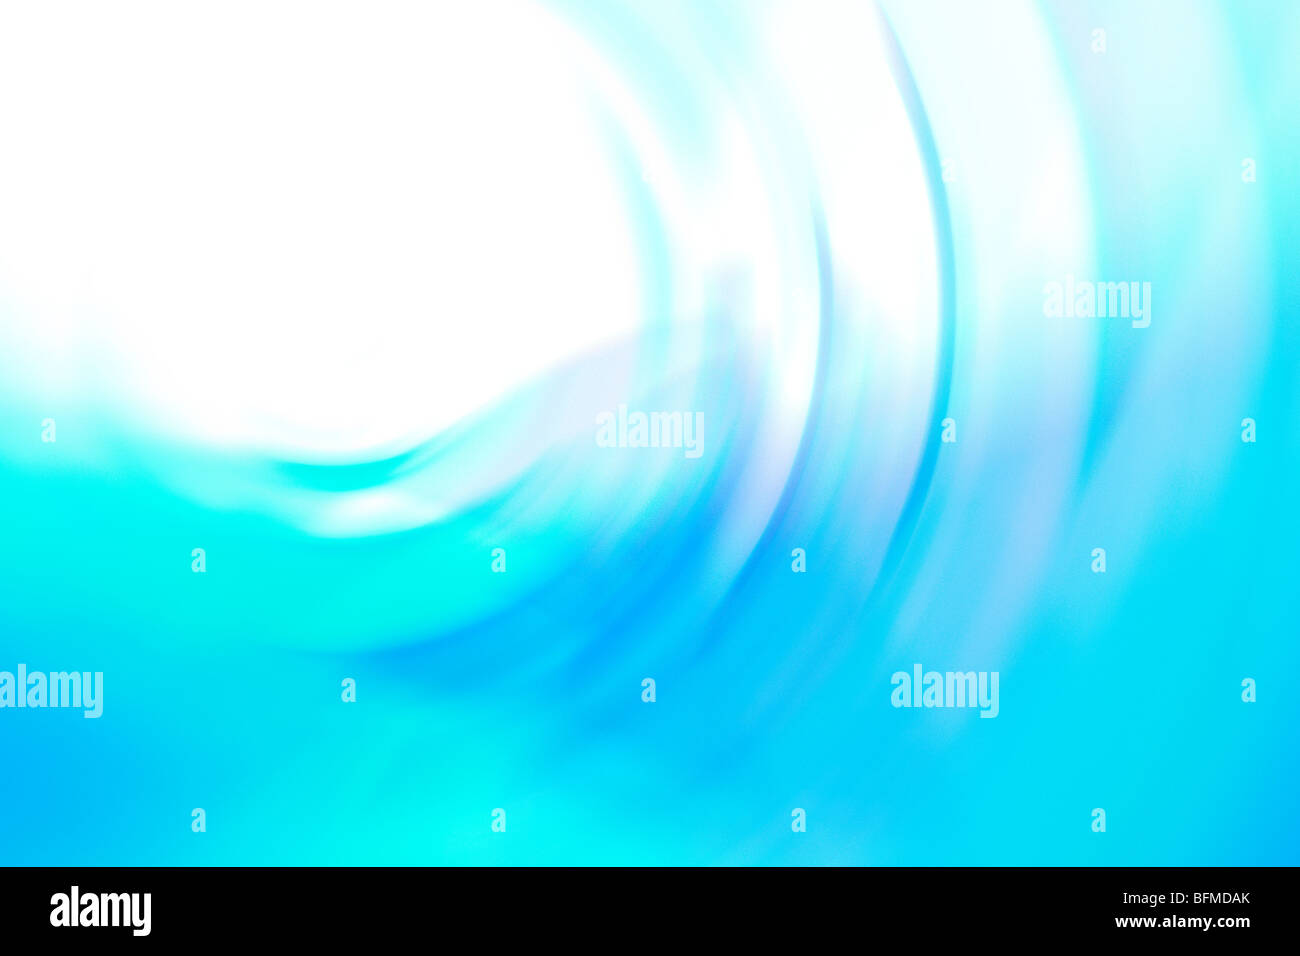 Abstract blue background 3 - Stock Image